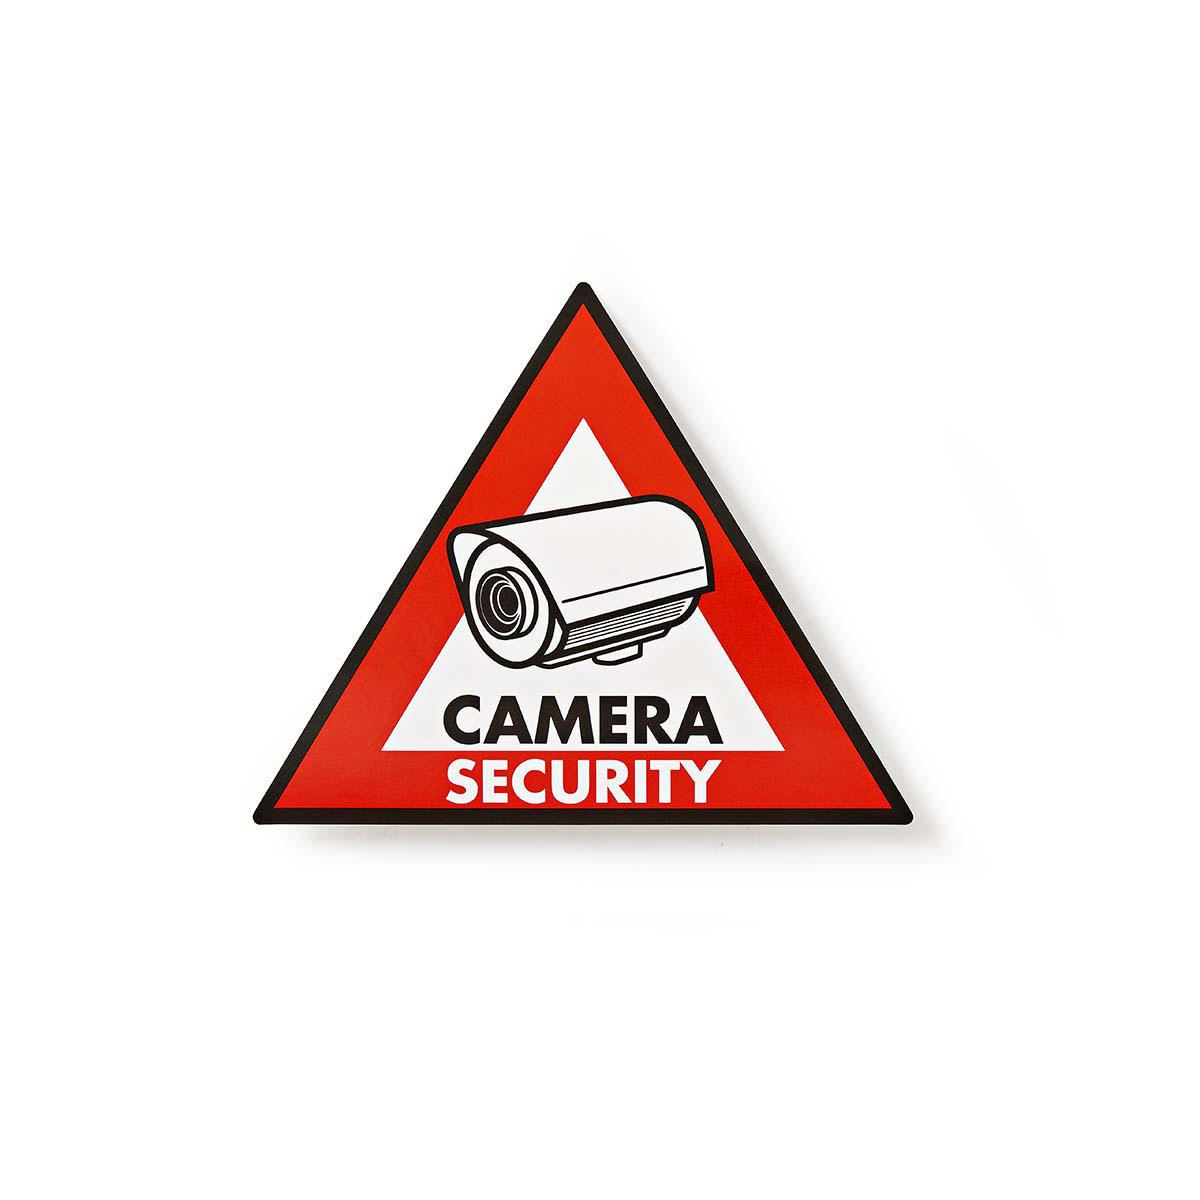 Details About Nedis Warning Sticker Camera Security Symbol Set Of 5 Pieces Stckwc105